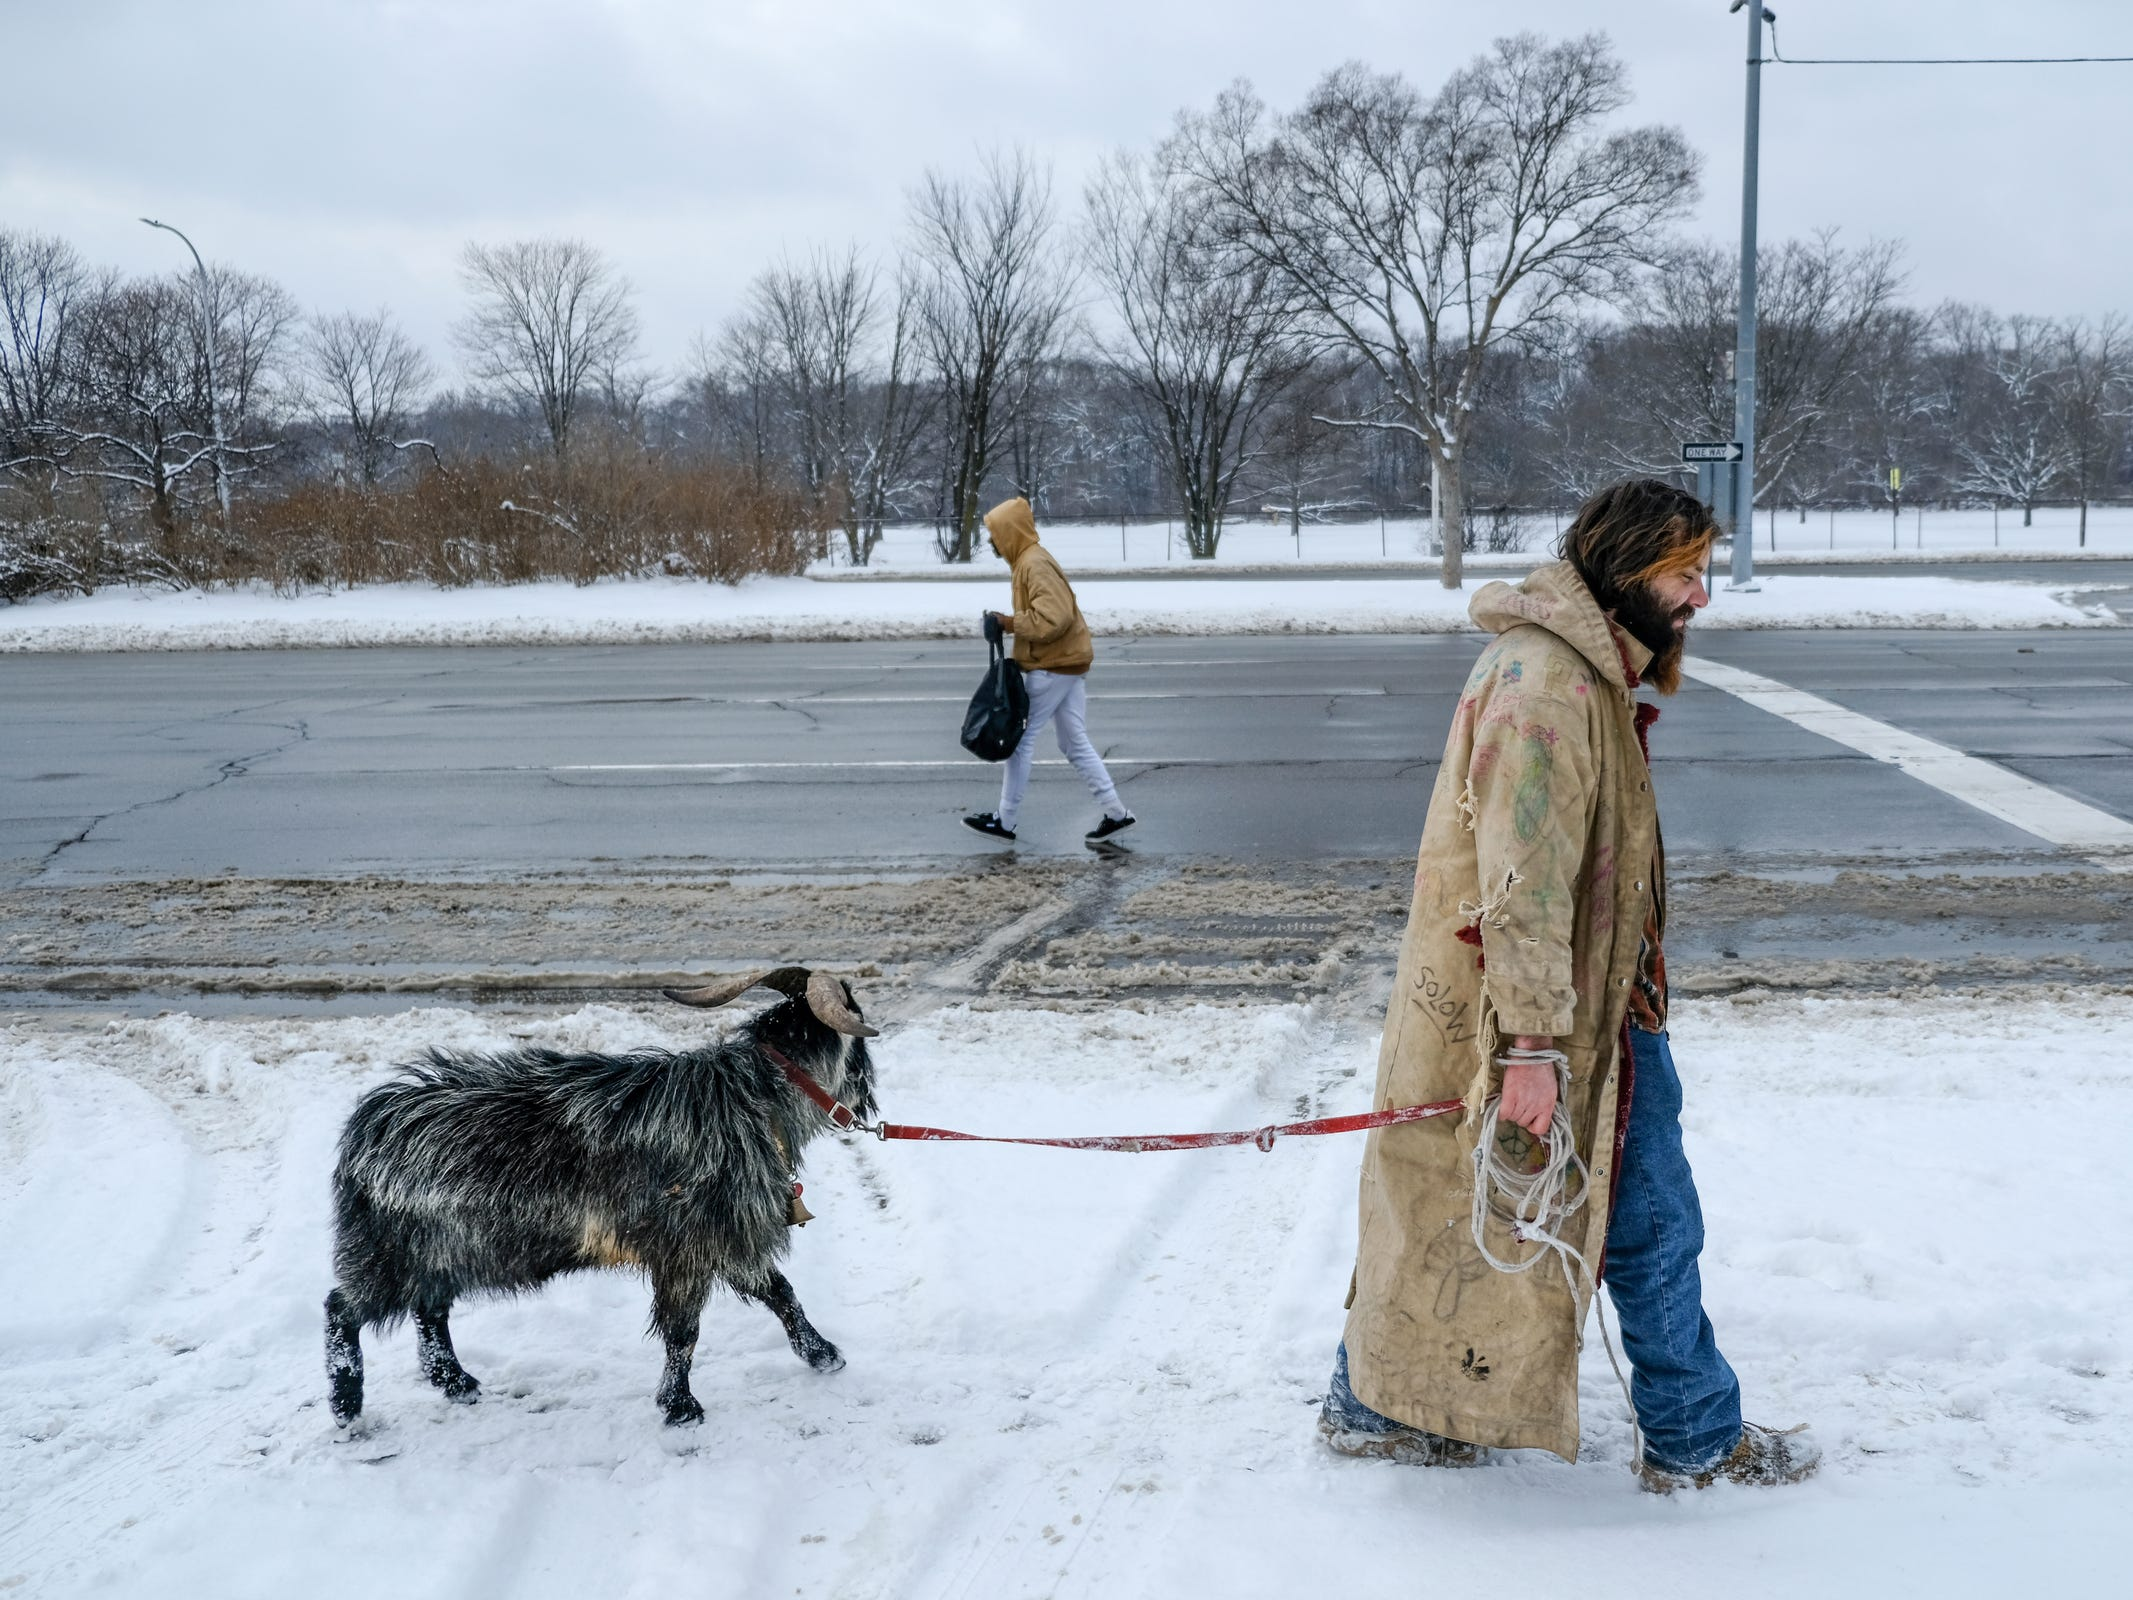 Erick Brown, 31, of Detroit walks with his goat named Deer along Woodward Ave. in Detroit on Wednesday, February 7, 2018. Brown was nearly beaten to death by people he let stay with him. The couple that set their dog on him and tied him up during the beating have since fled the state.